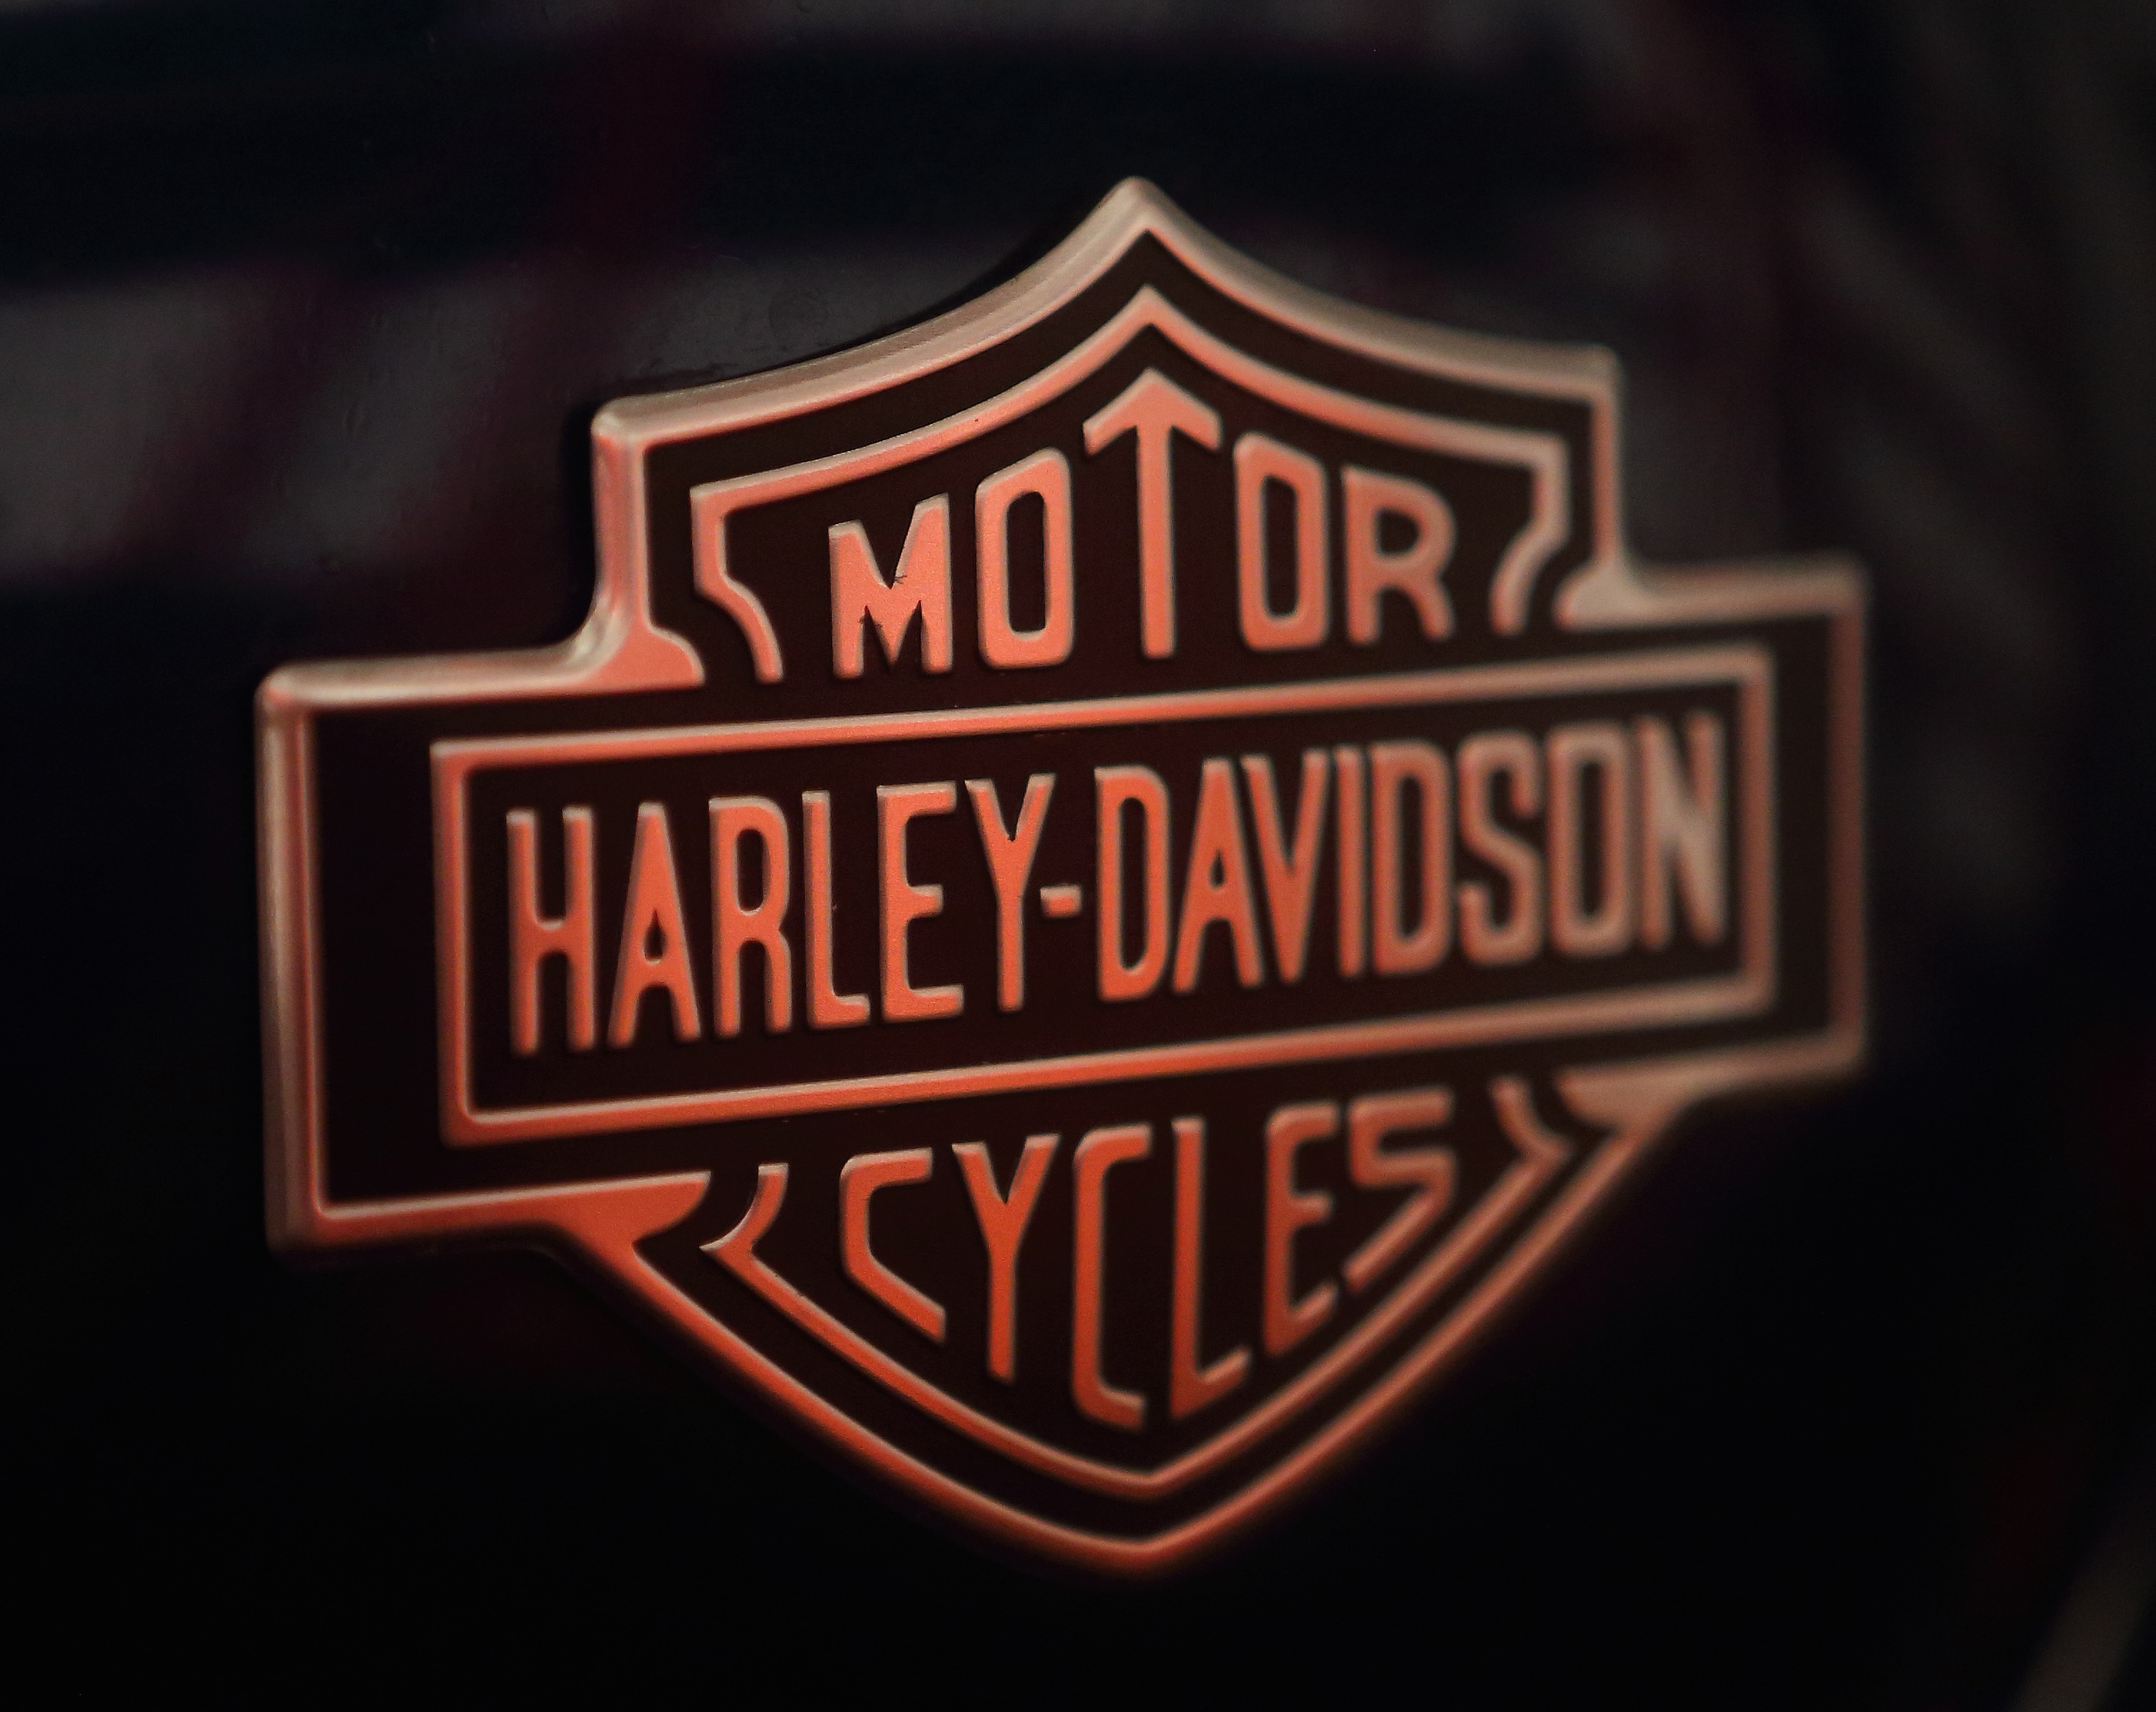 strategic group map harley davidson Harley-davidson used myerson game theory to gain a competitive edge over its japanese through the acquisition of mv augusta group harley-davidson was further allowed to capitalise on ansoff's why have harley-davidson been more or less successful in their strategic planning approach.